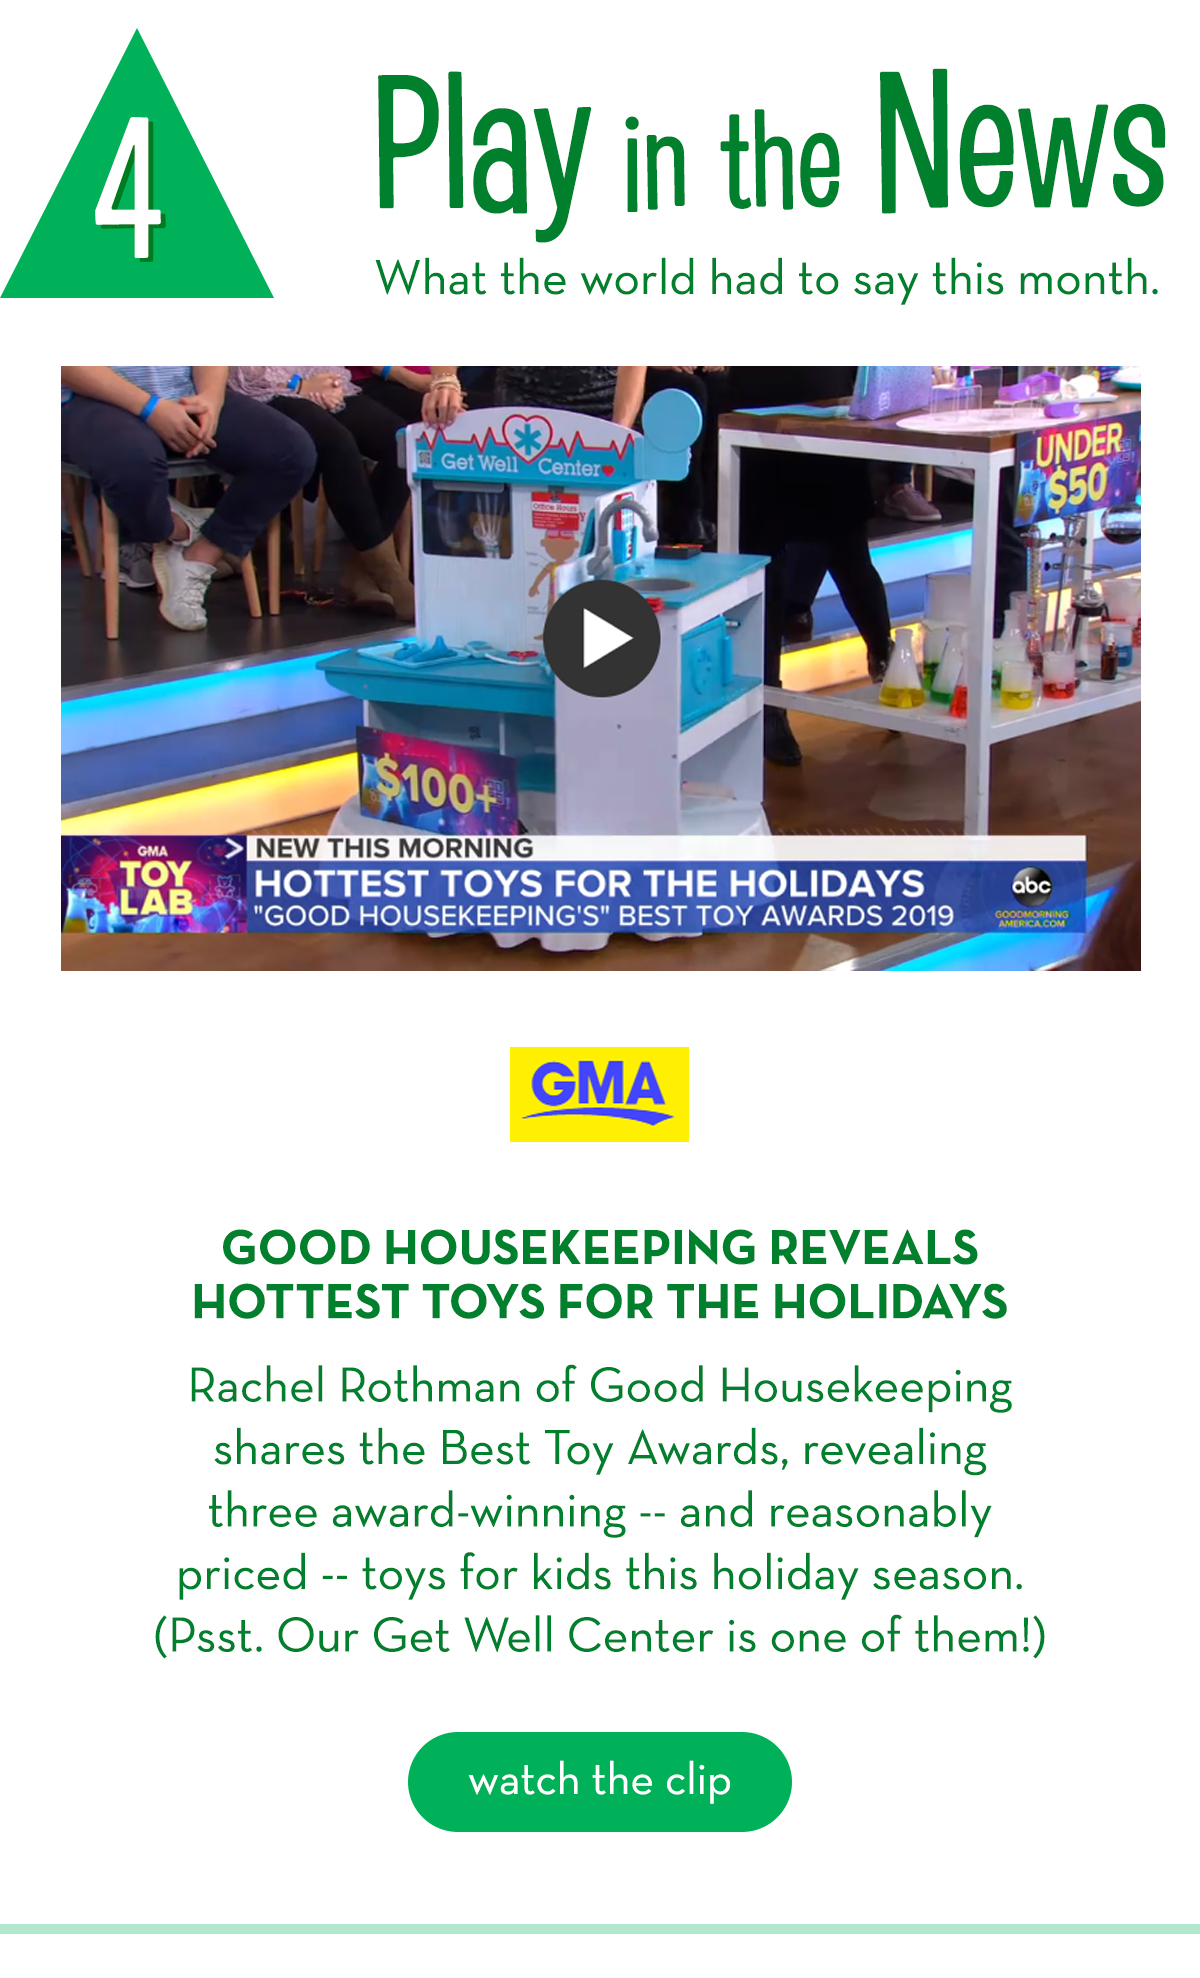 4. Play in the News: What the world had to say this month. - GMA: Good Housekeeping reveals hottest toys for the holidays!